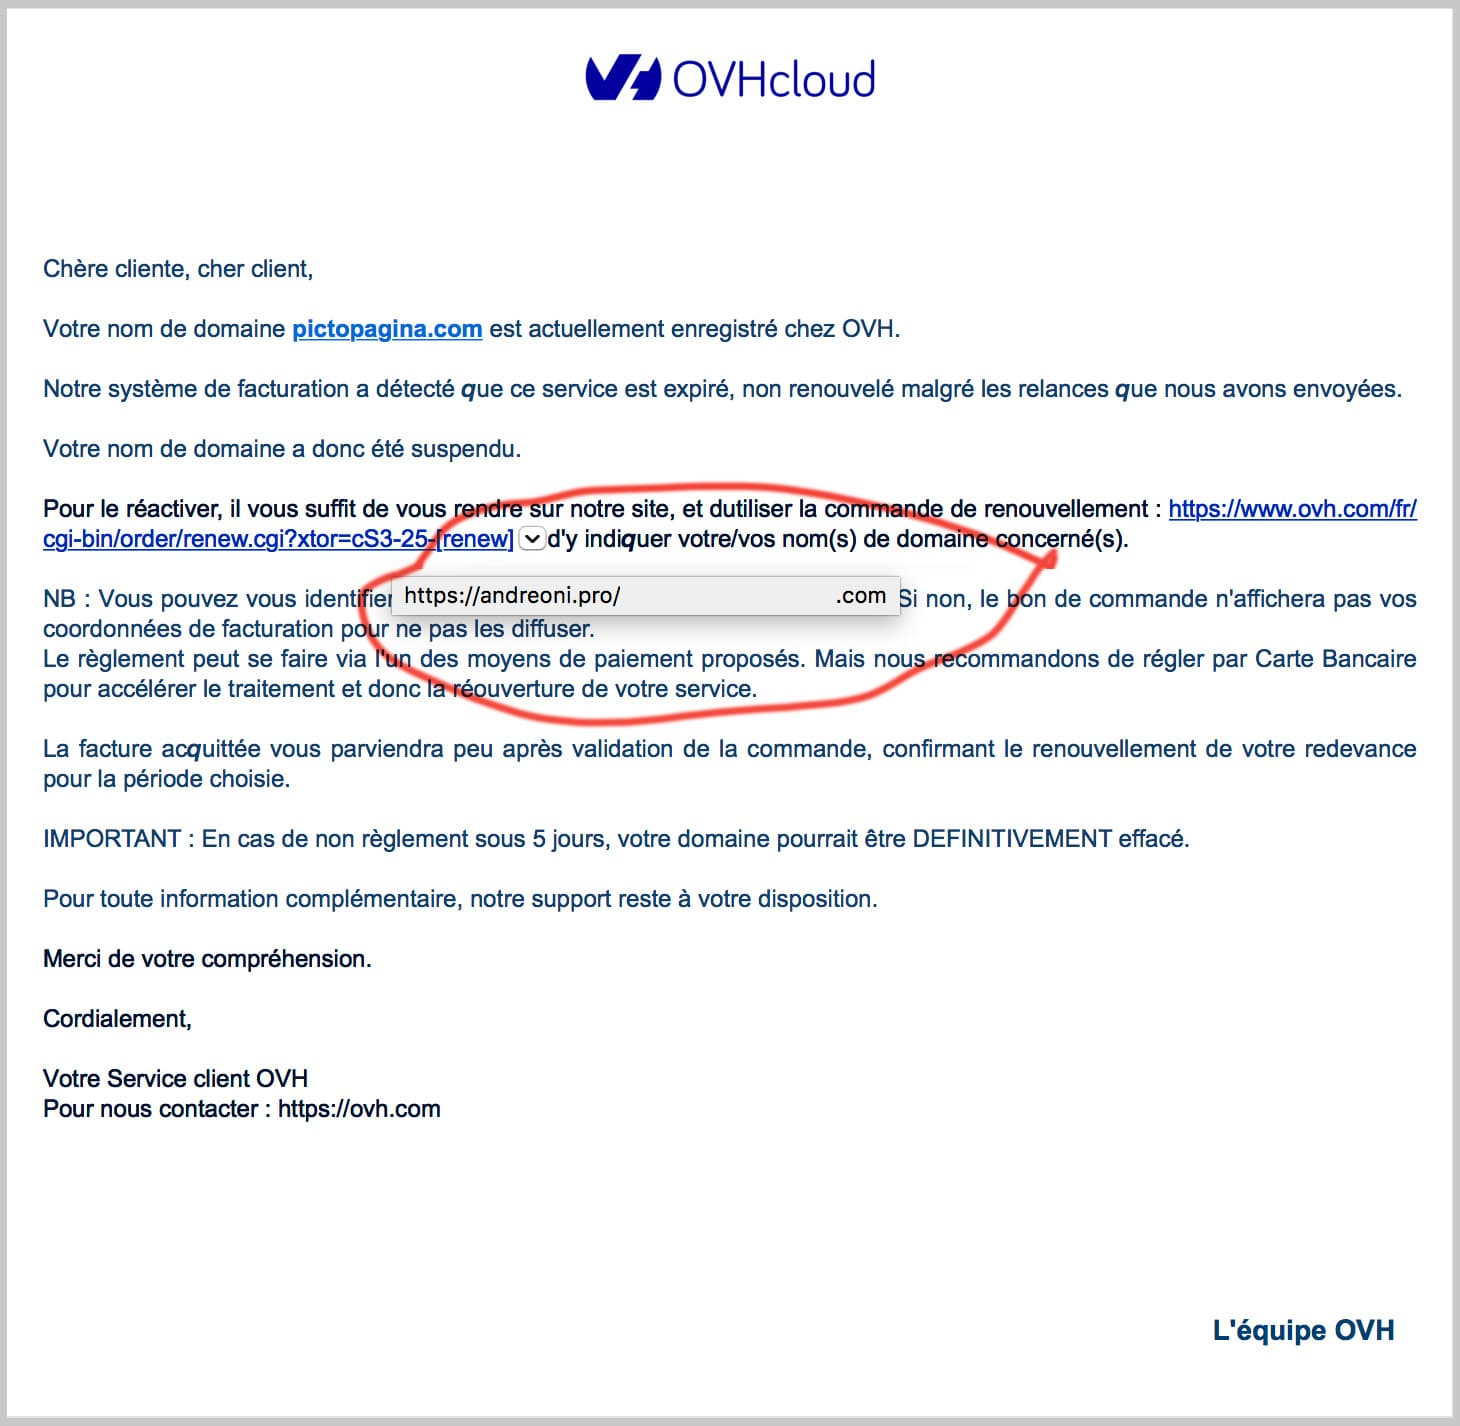 phishing-04-mail-recu-1er